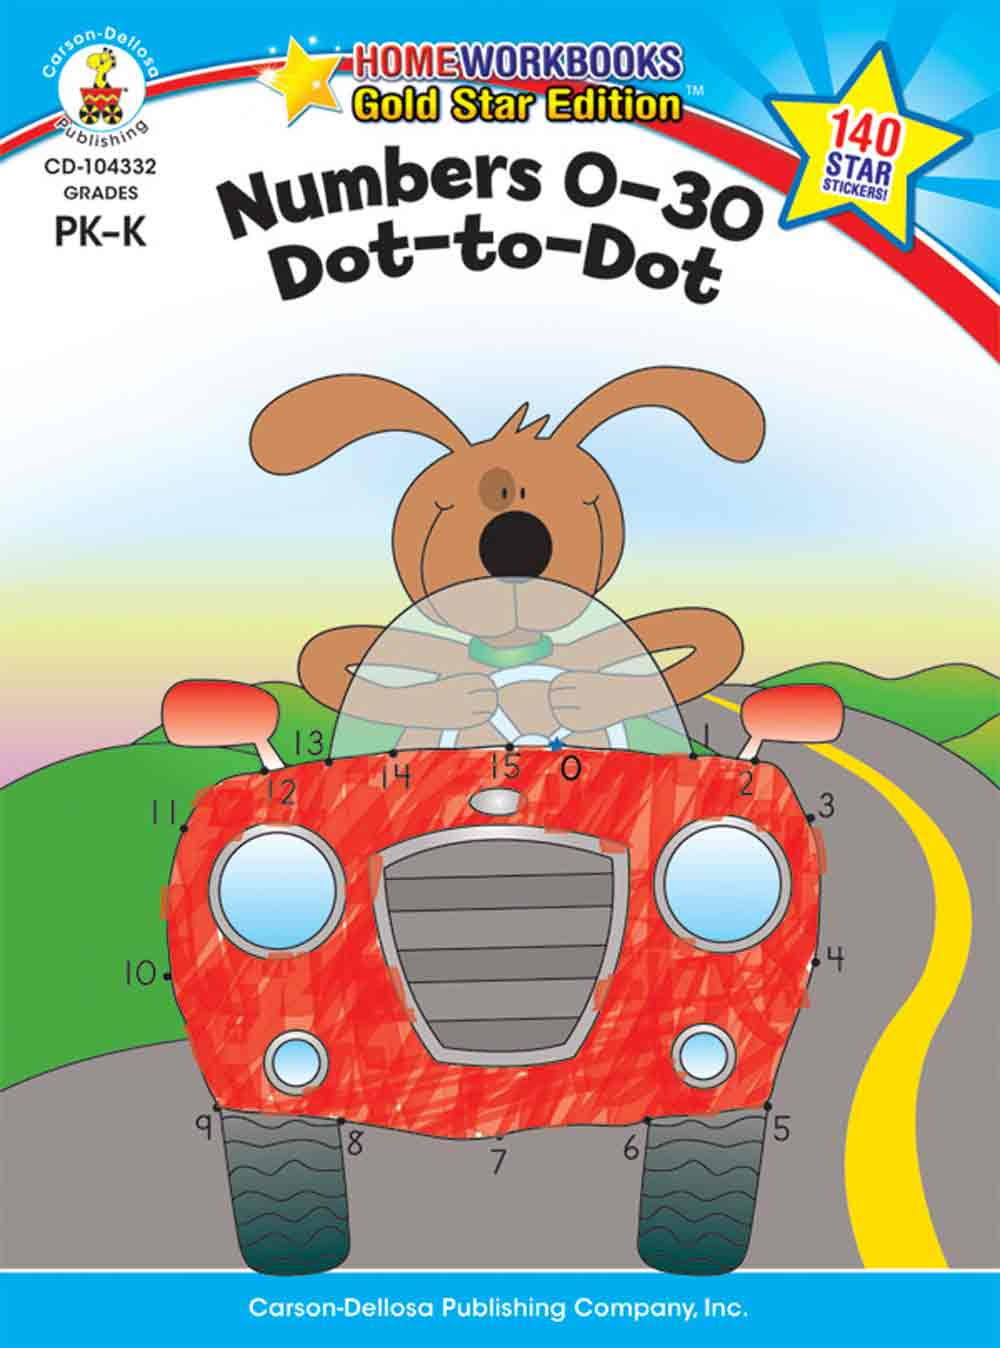 Numbers 0-30: Dot-to-Dot, Grades PK-K: Gold Star Edition - Carson-Dellosa Publishing